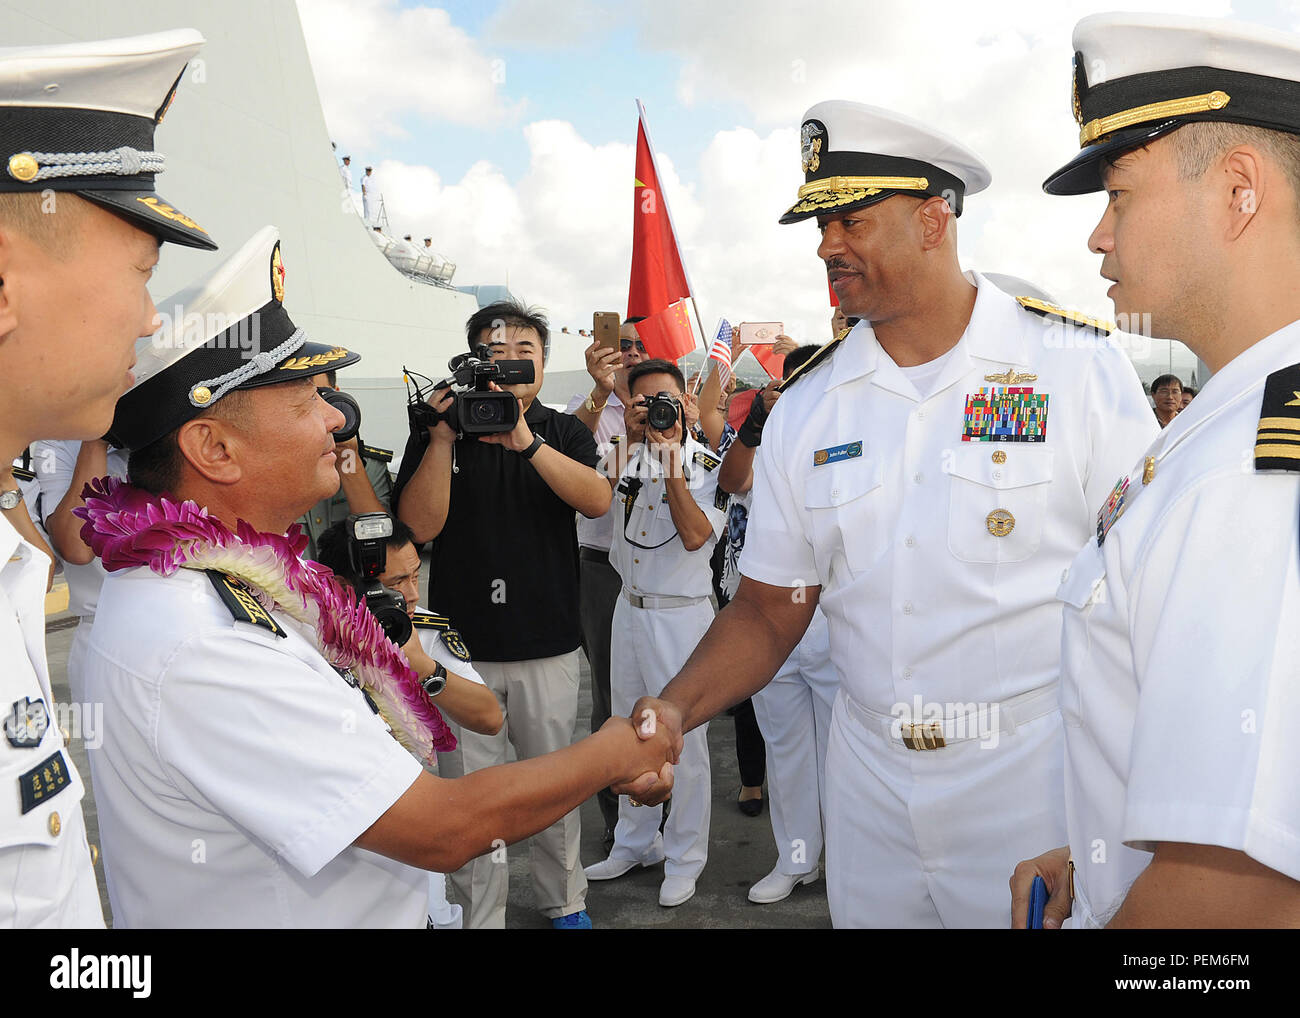 151213-N-ZK021-004    PEARL HARBOR (Dec. 13, 2015) Rear Adm. John Fuller, commander, Navy Region Hawaii and Naval Surface Group Middle Pacific greets Senior Captain Wang Jianxum, deputy chief of staff of East Sea Fleet, People's Liberation Army (Navy) and commander, Escort Task Group, CNS Jinan (DDG-152), during a routine port visit to Hawaii. The port visit demonstrates parity and reciprocity between two maritime nations. As part of a planned series of military-to-military exchanges between two nations, Chinese and U.S. naval officers will conduct dialogues to build confidence and mutual unde - Stock Image